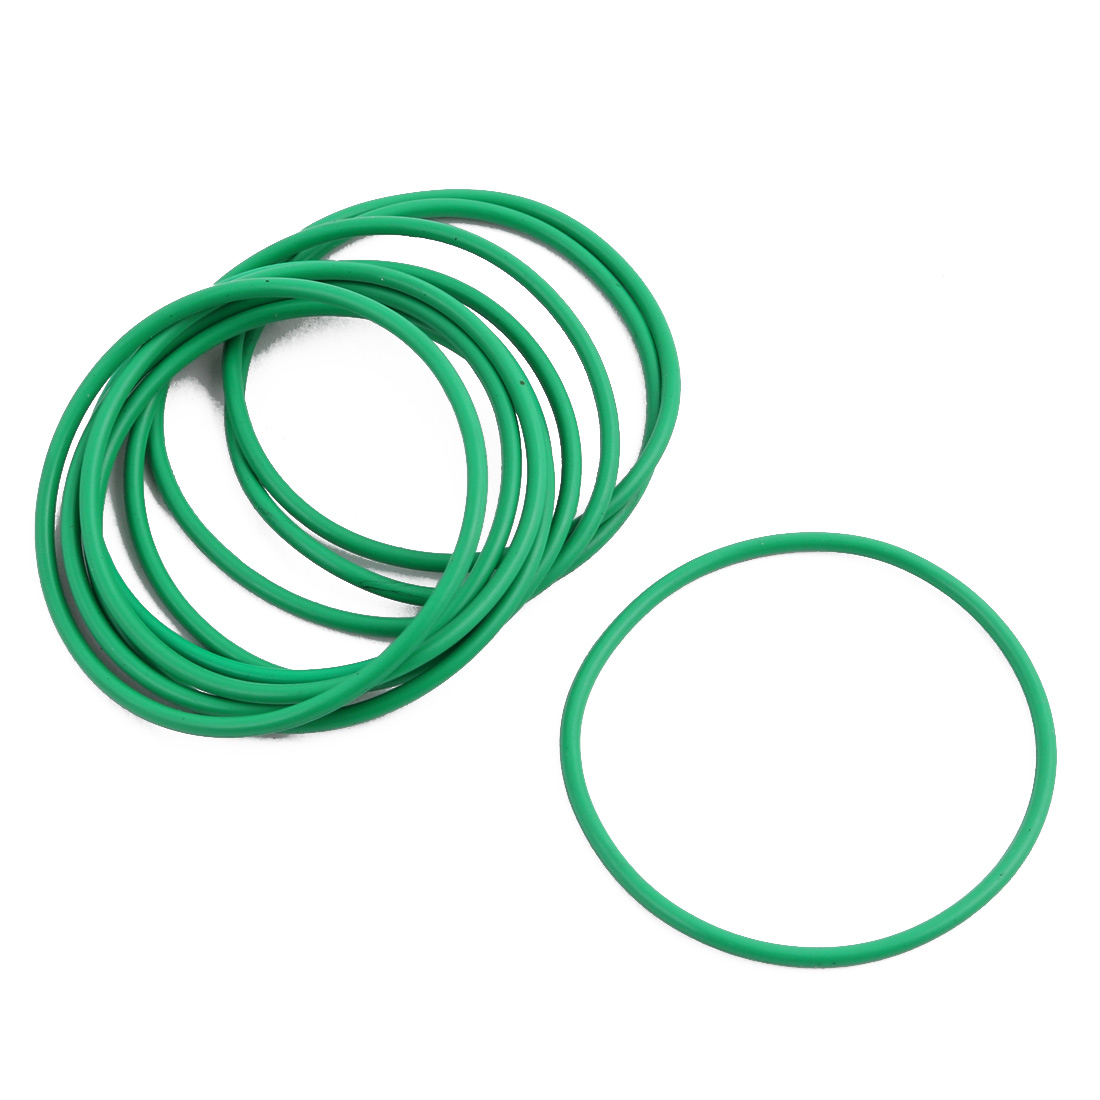 10Pcs Green 35 x 1.4mm Industrial Flexible Rubber O Ring Oil Sealing Grommets